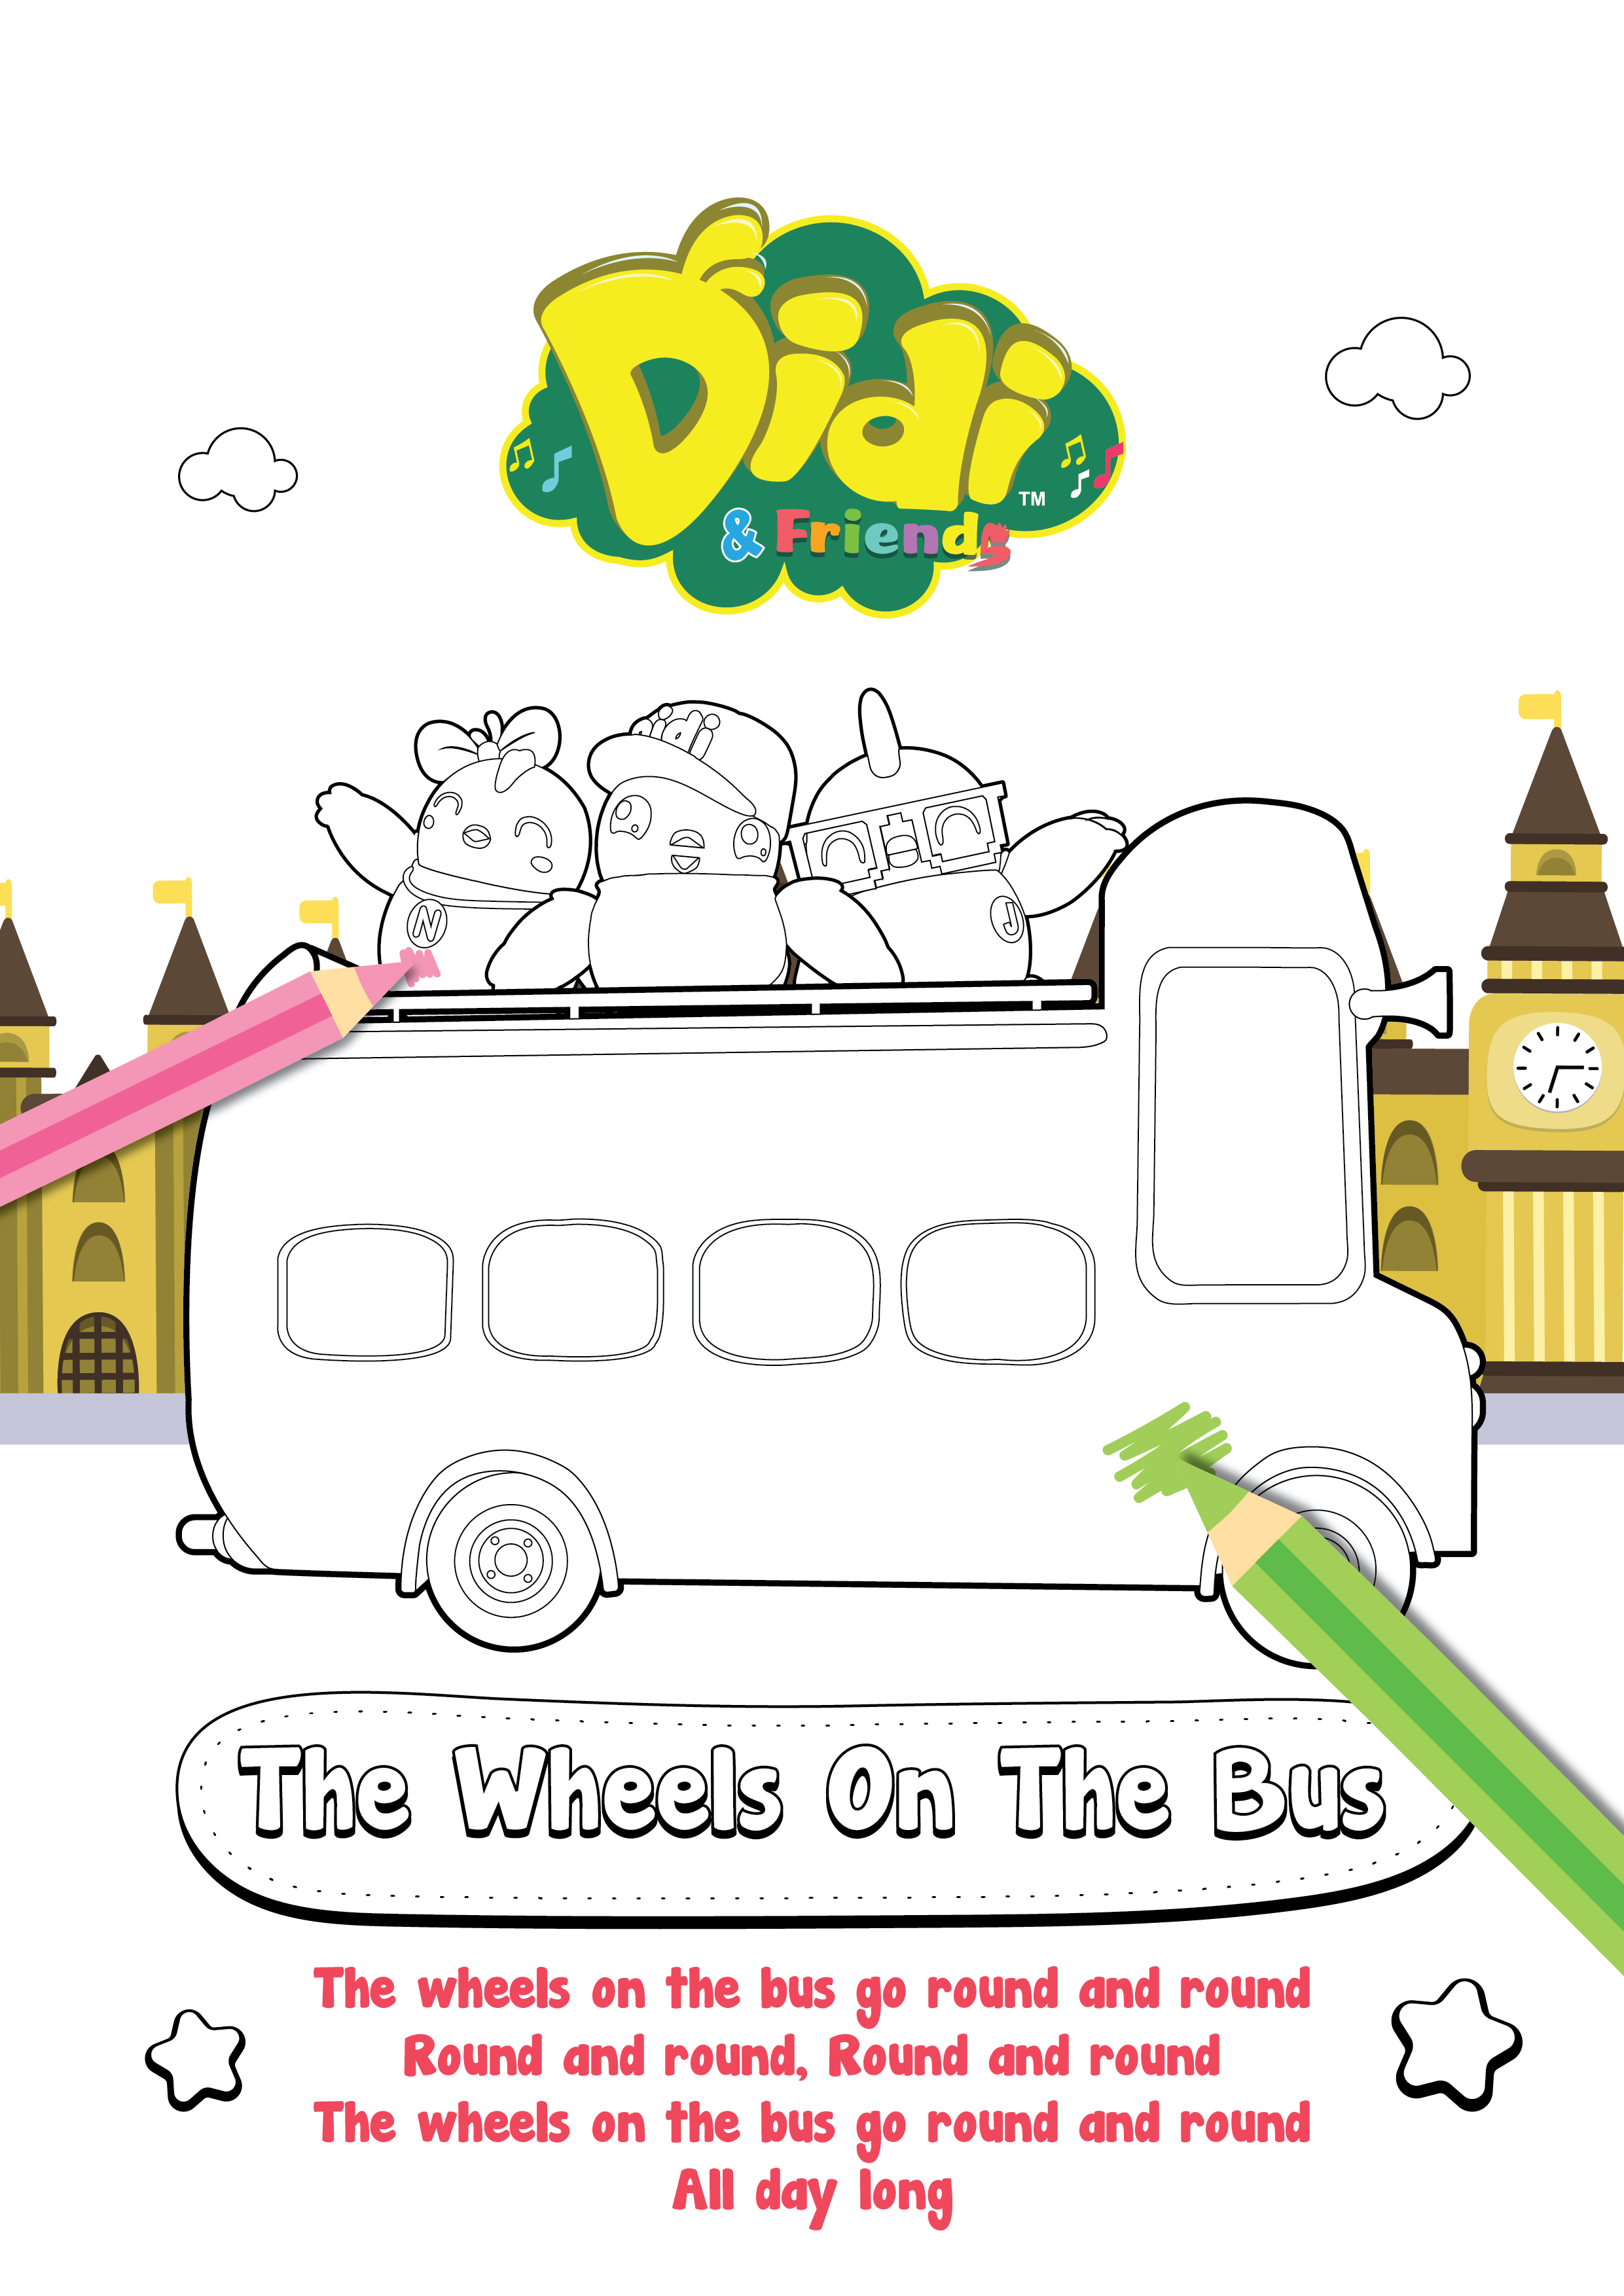 Colouring Sheet Nursery Rhymes The Weels On The Bus Didi Friends Coloring Sheets For Kids Nursery Rhymes Color Activities